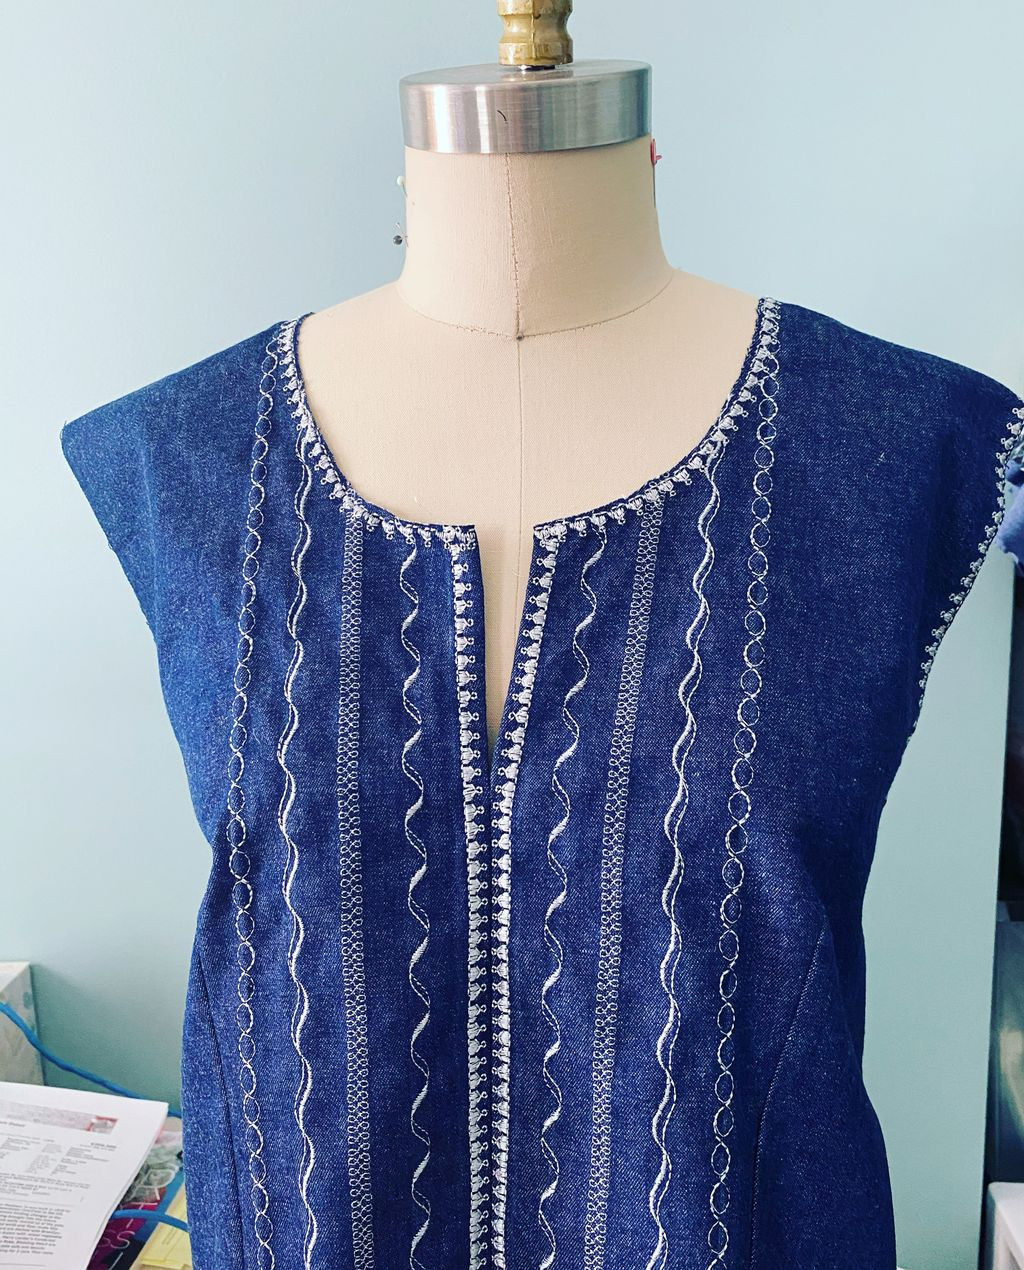 Embroidered Front of Dress